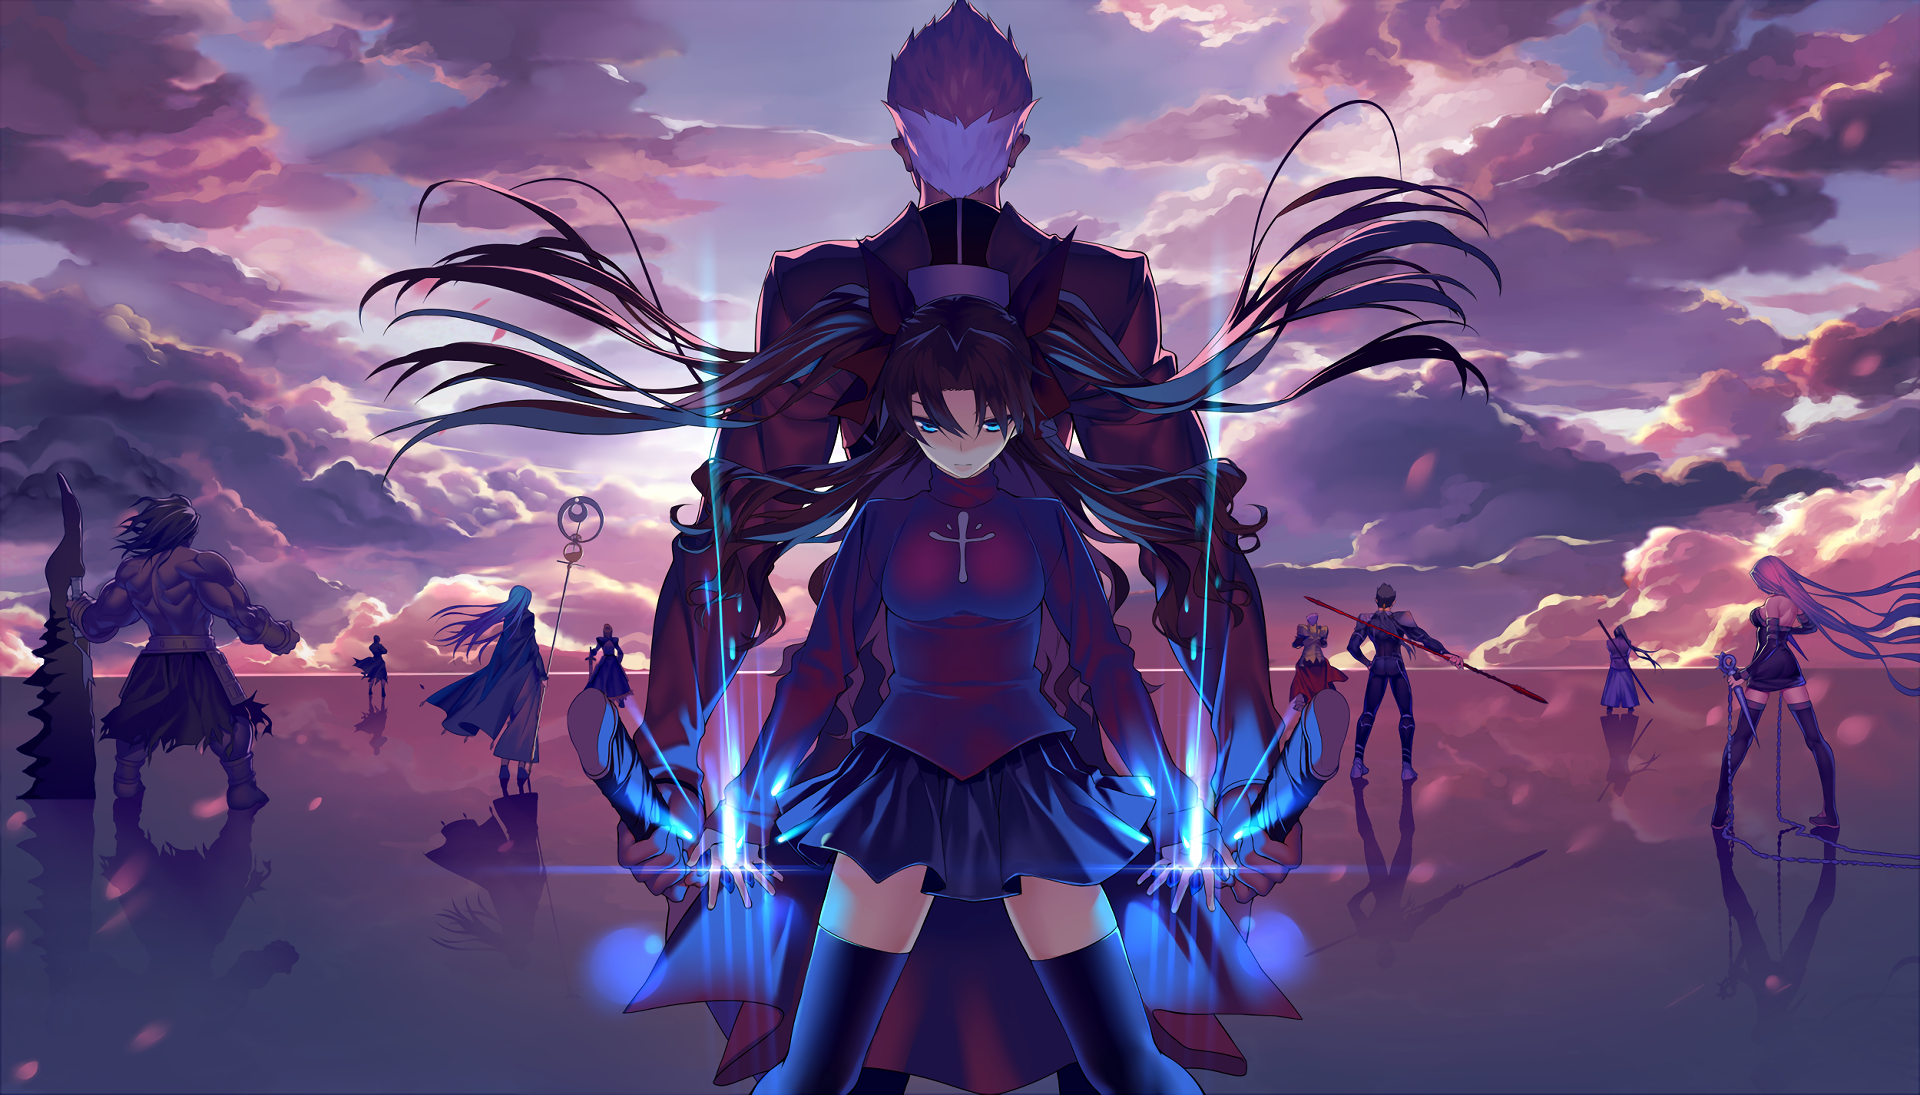 118 Archer (Fate/Stay Night) HD Wallpapers | Backgrounds